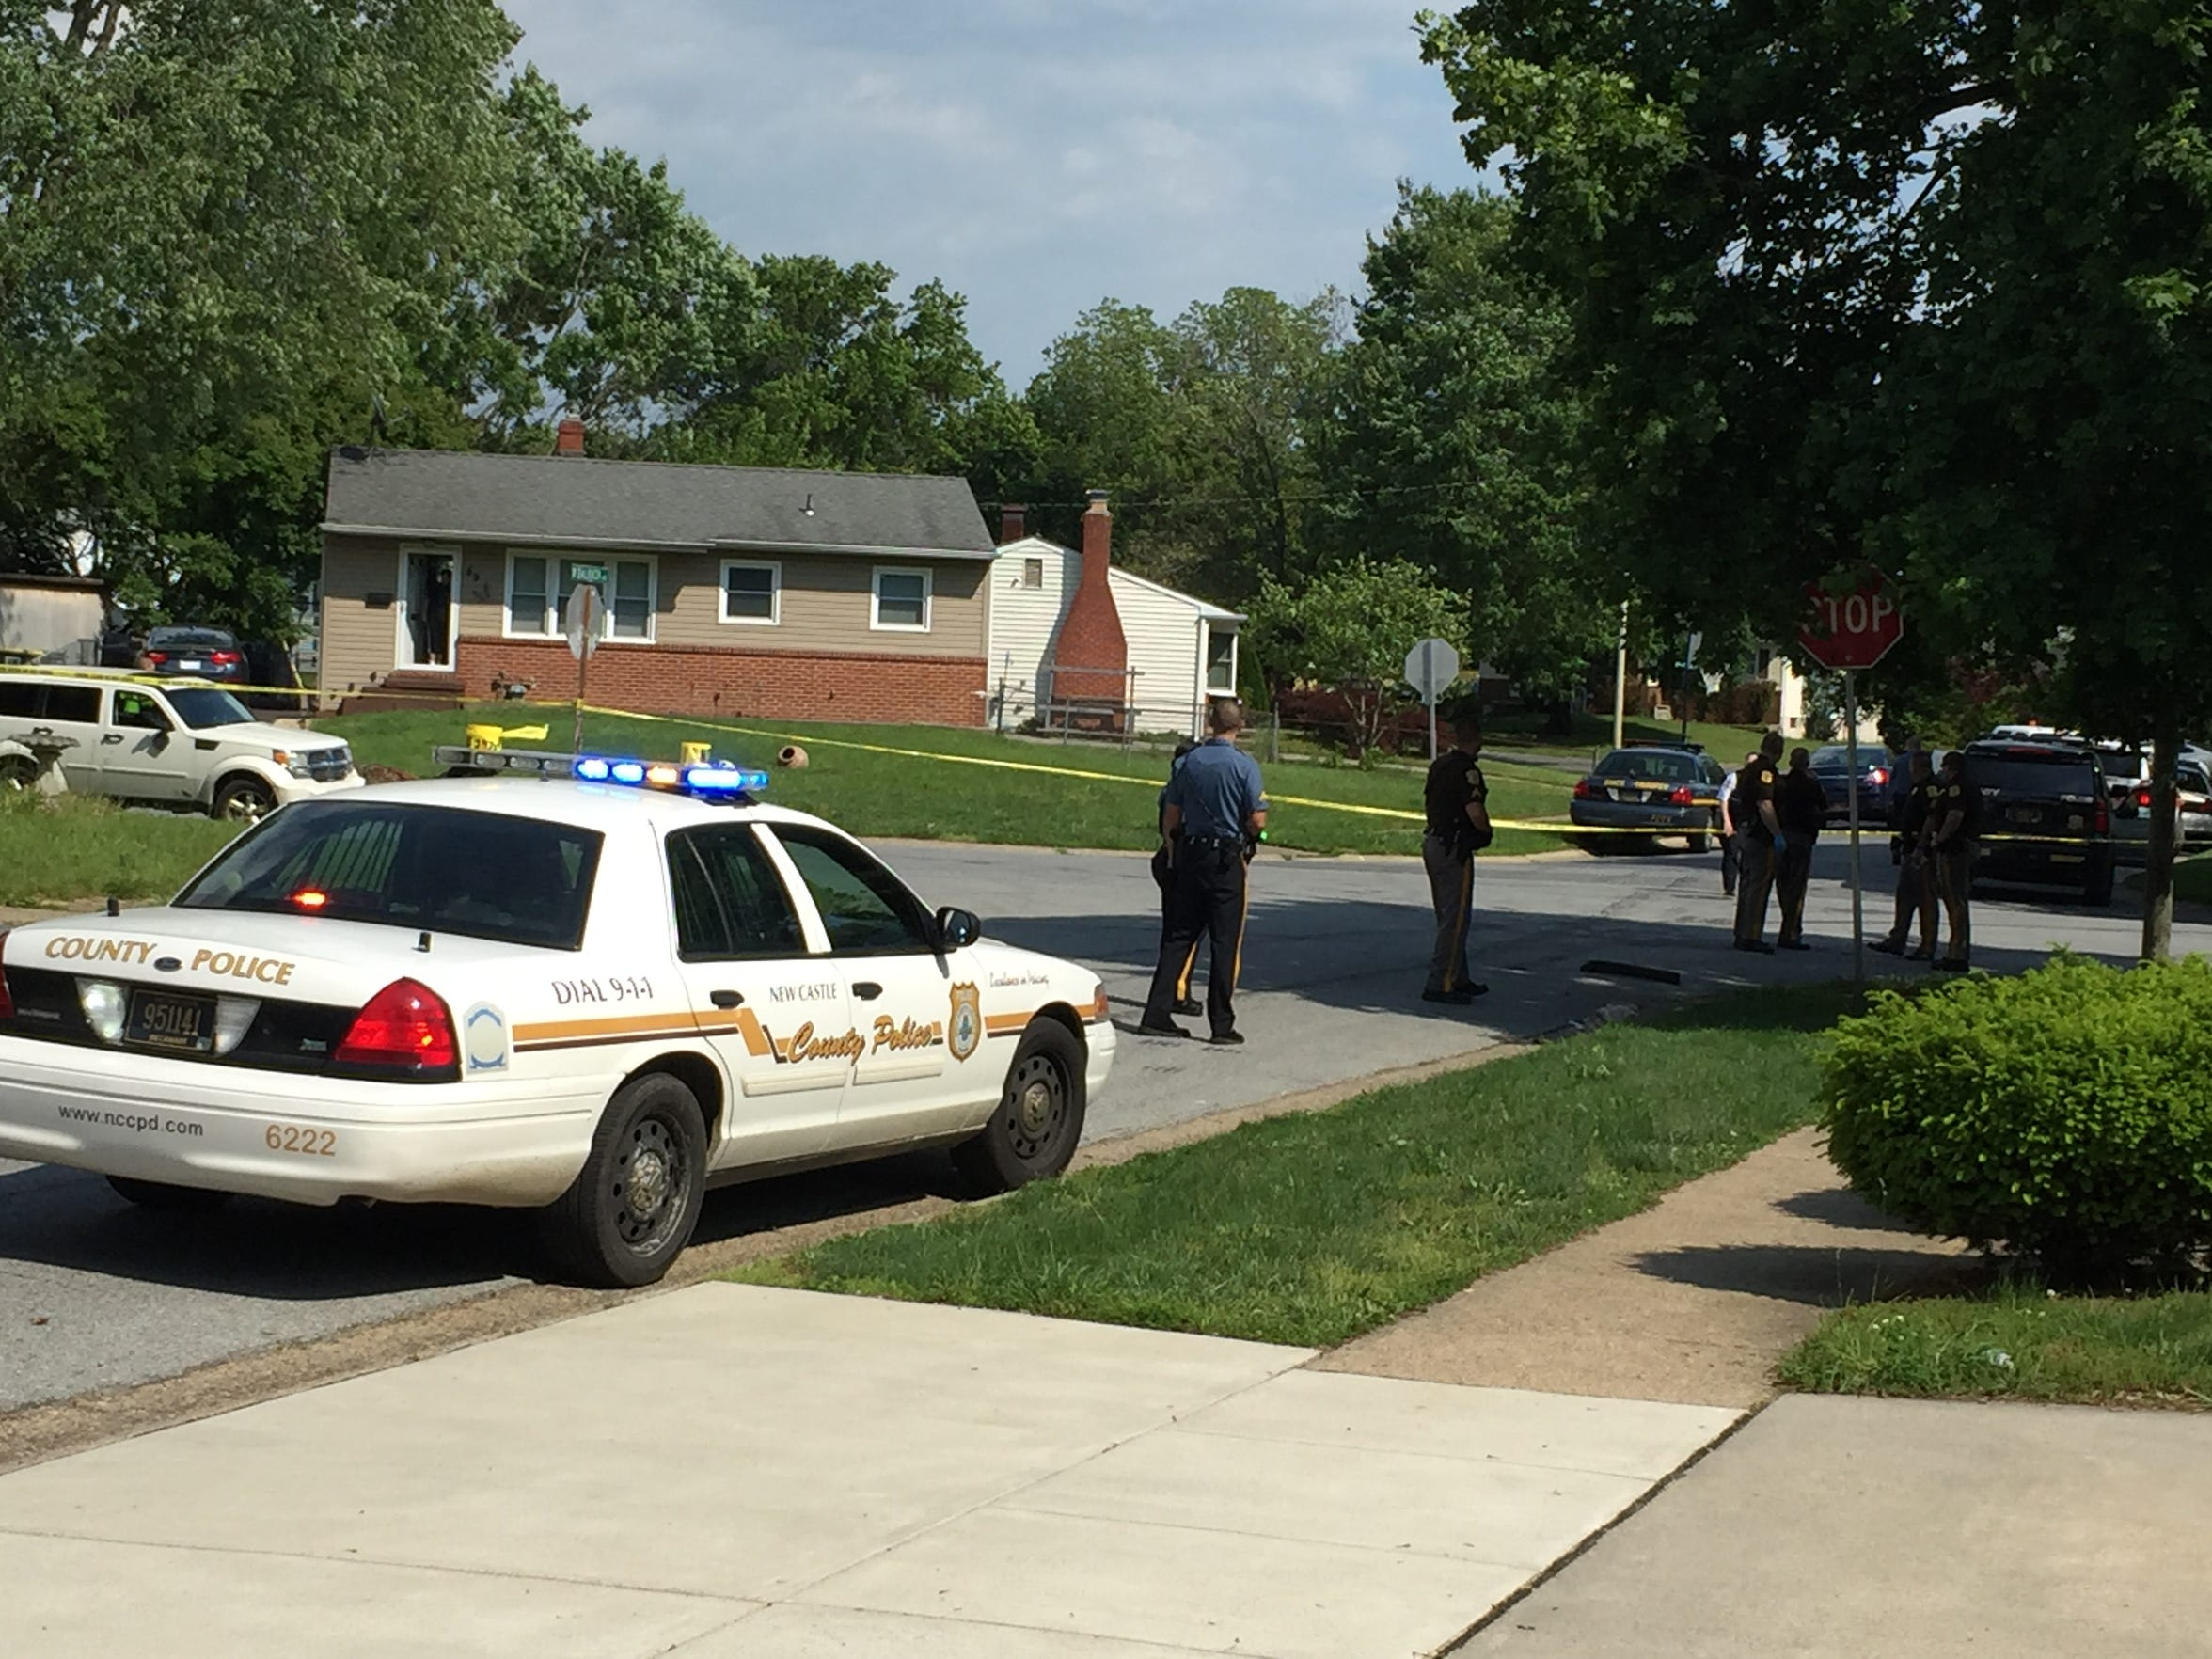 New Castle County police respond to the area of Balbach Avenue and Holden Drive following reports of a shooting.